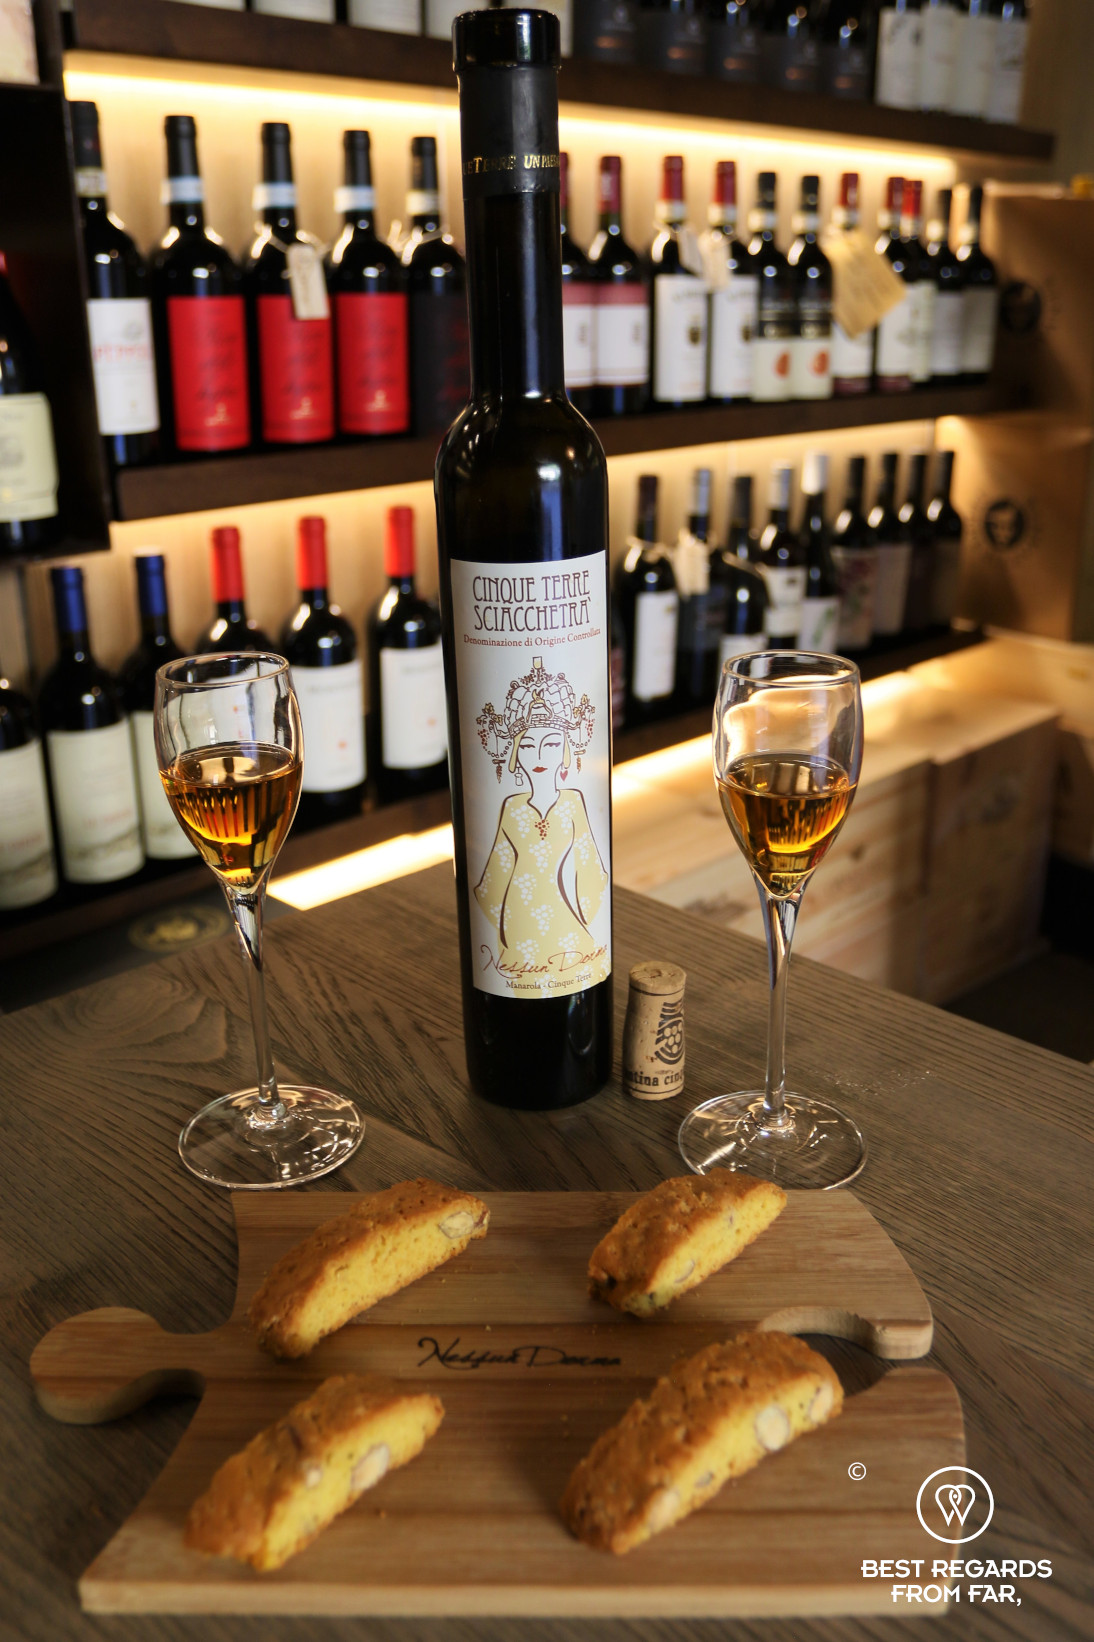 Italian sweet wine presented in the Cantina wine bar in Manerola, Cinque Terre